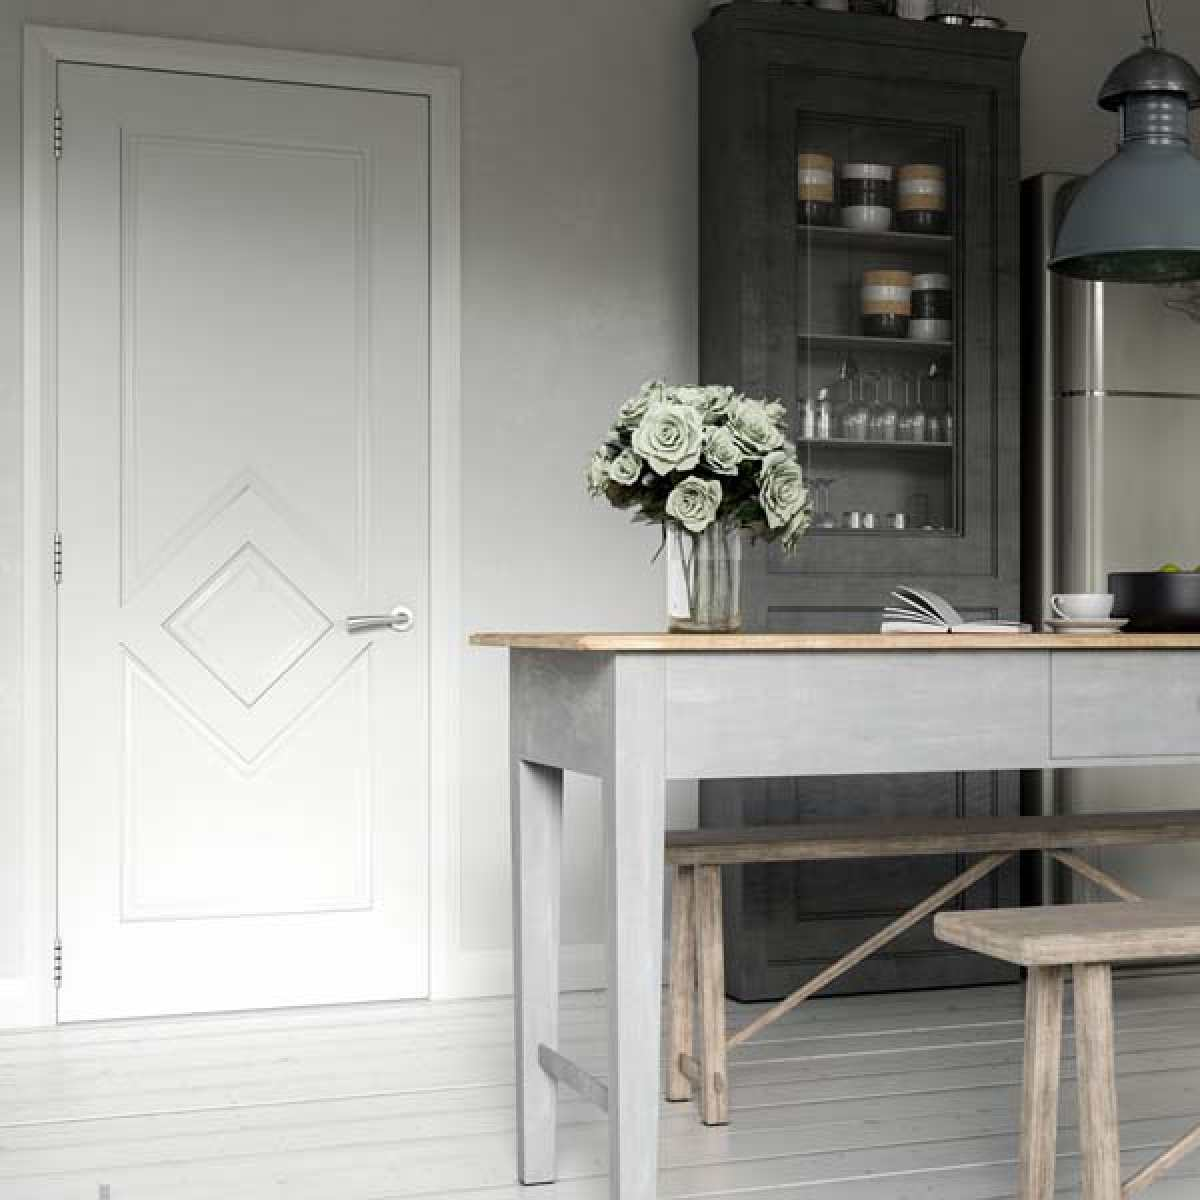 ascot white primed lifestyle websters Image by Websters Timber